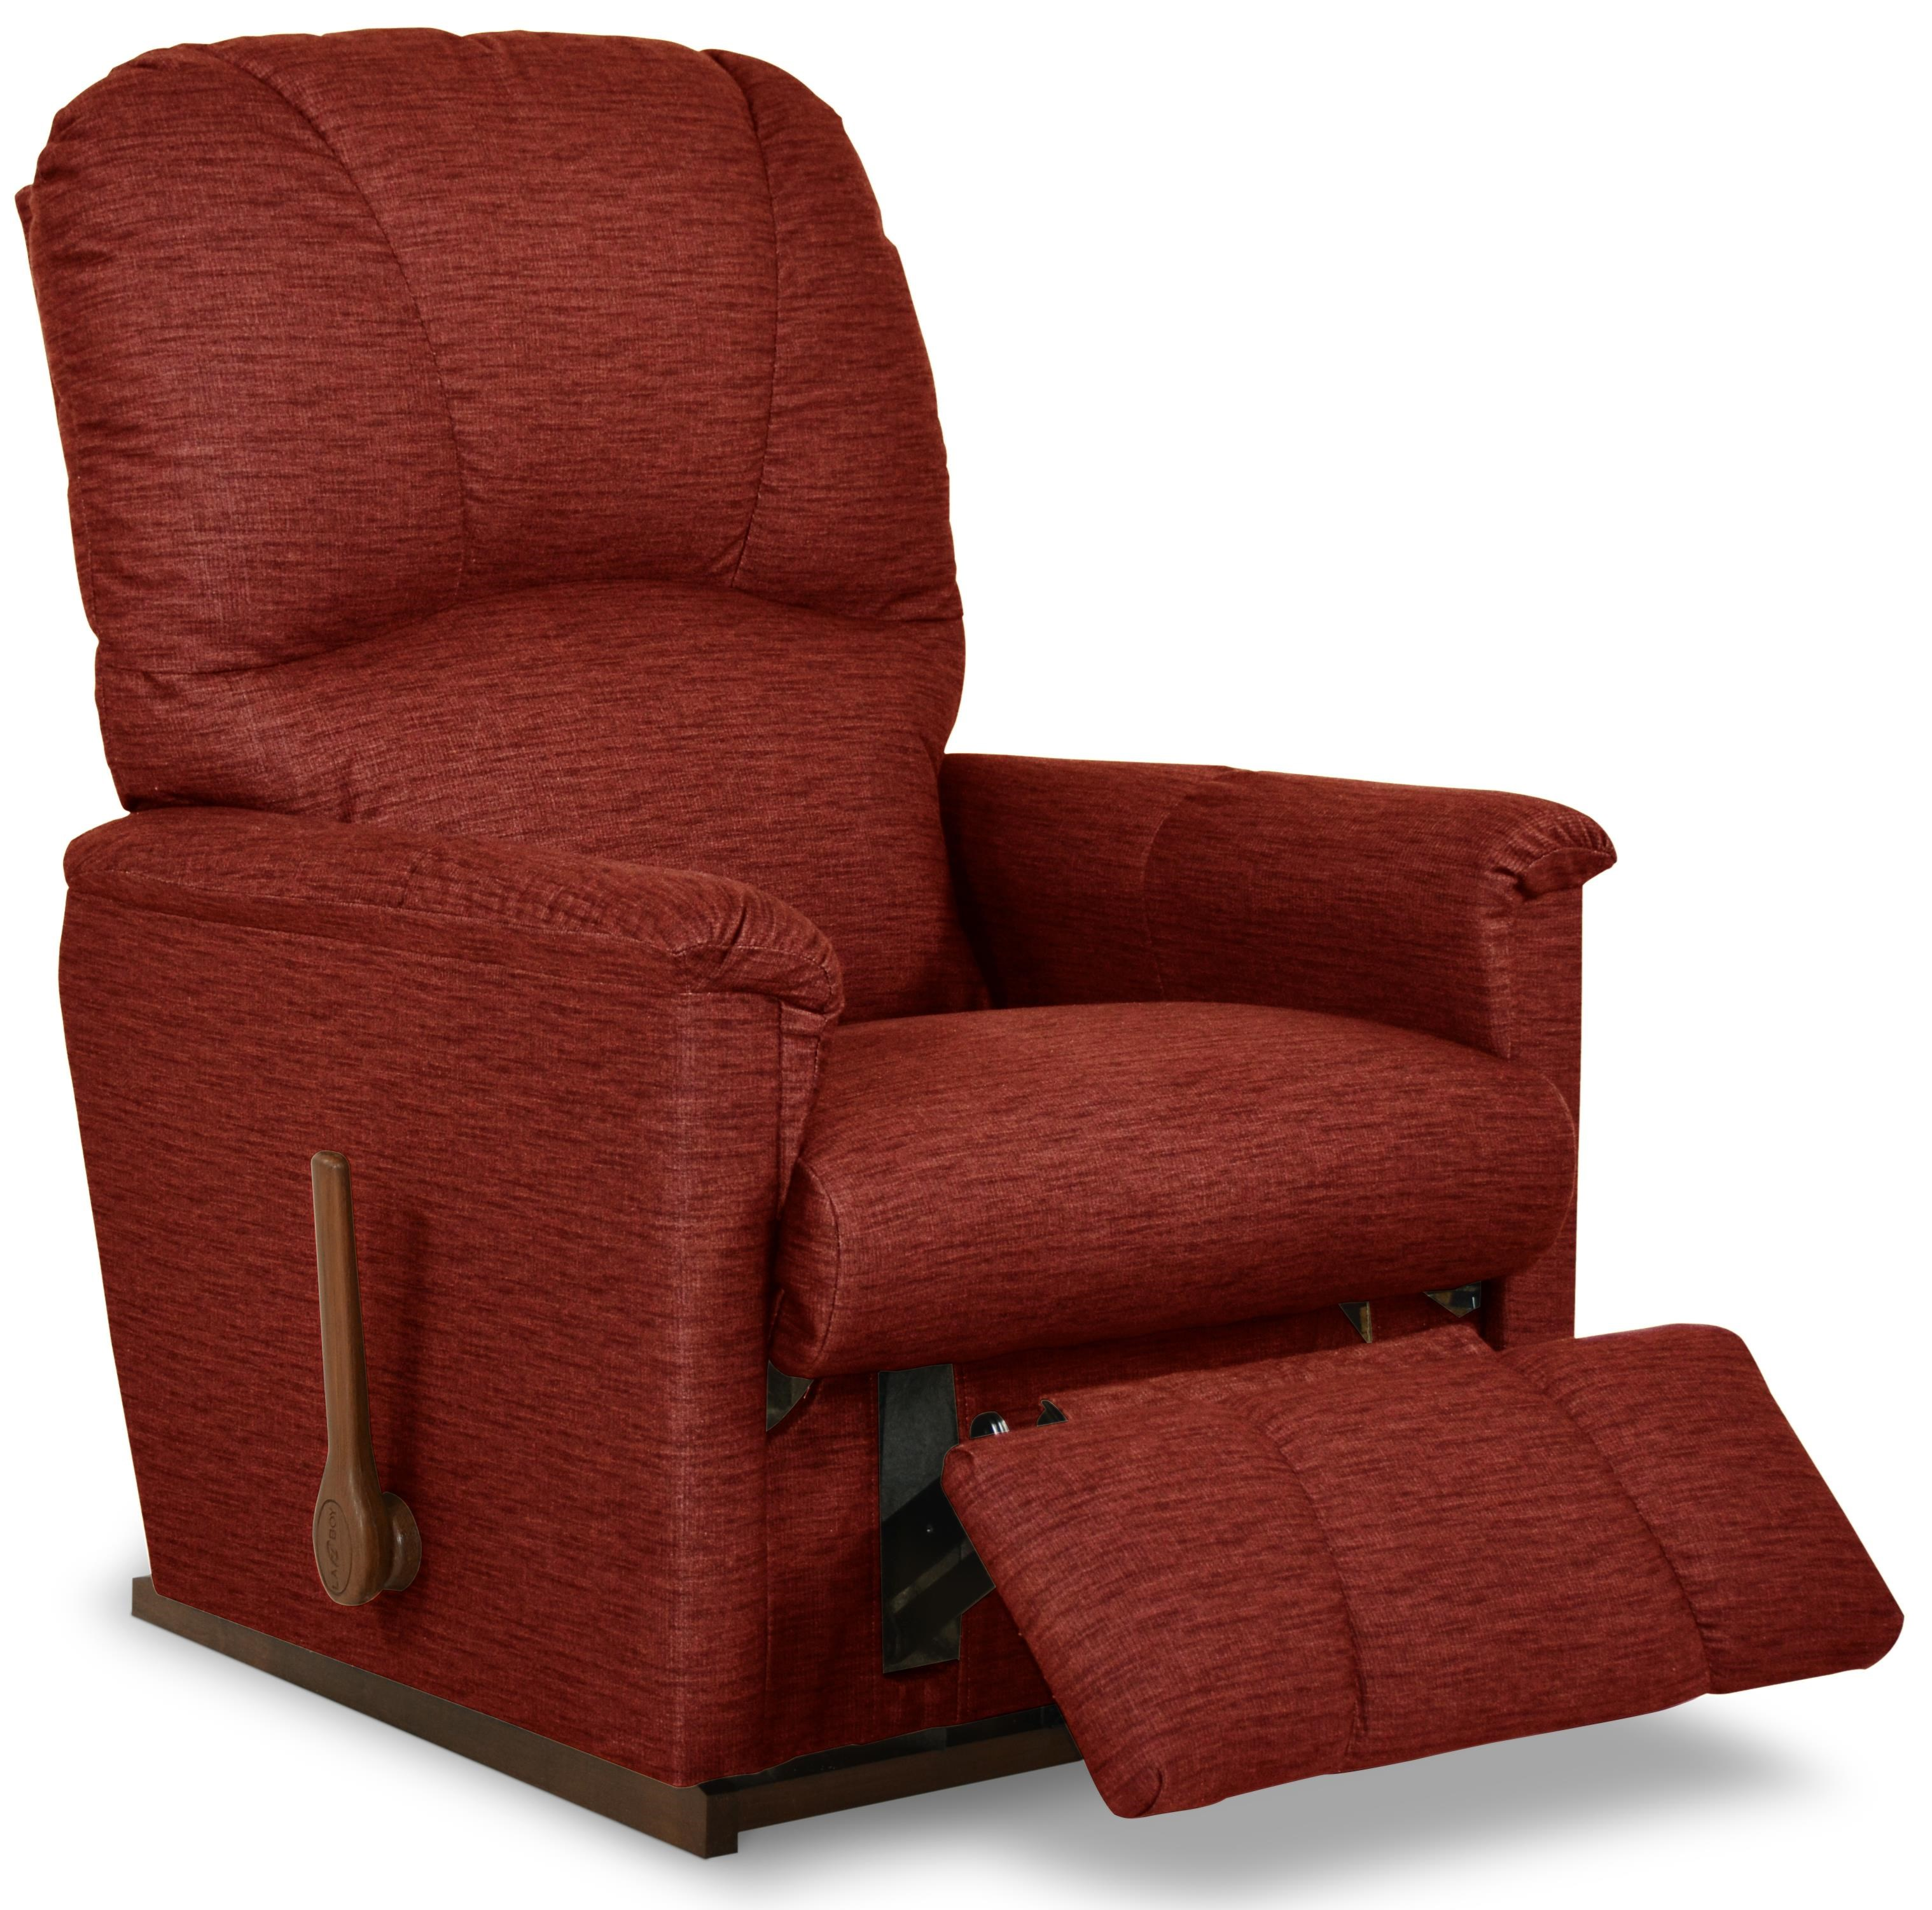 Mercury Mercury Rocker Recliner by La-Z-Boy at Morris Home